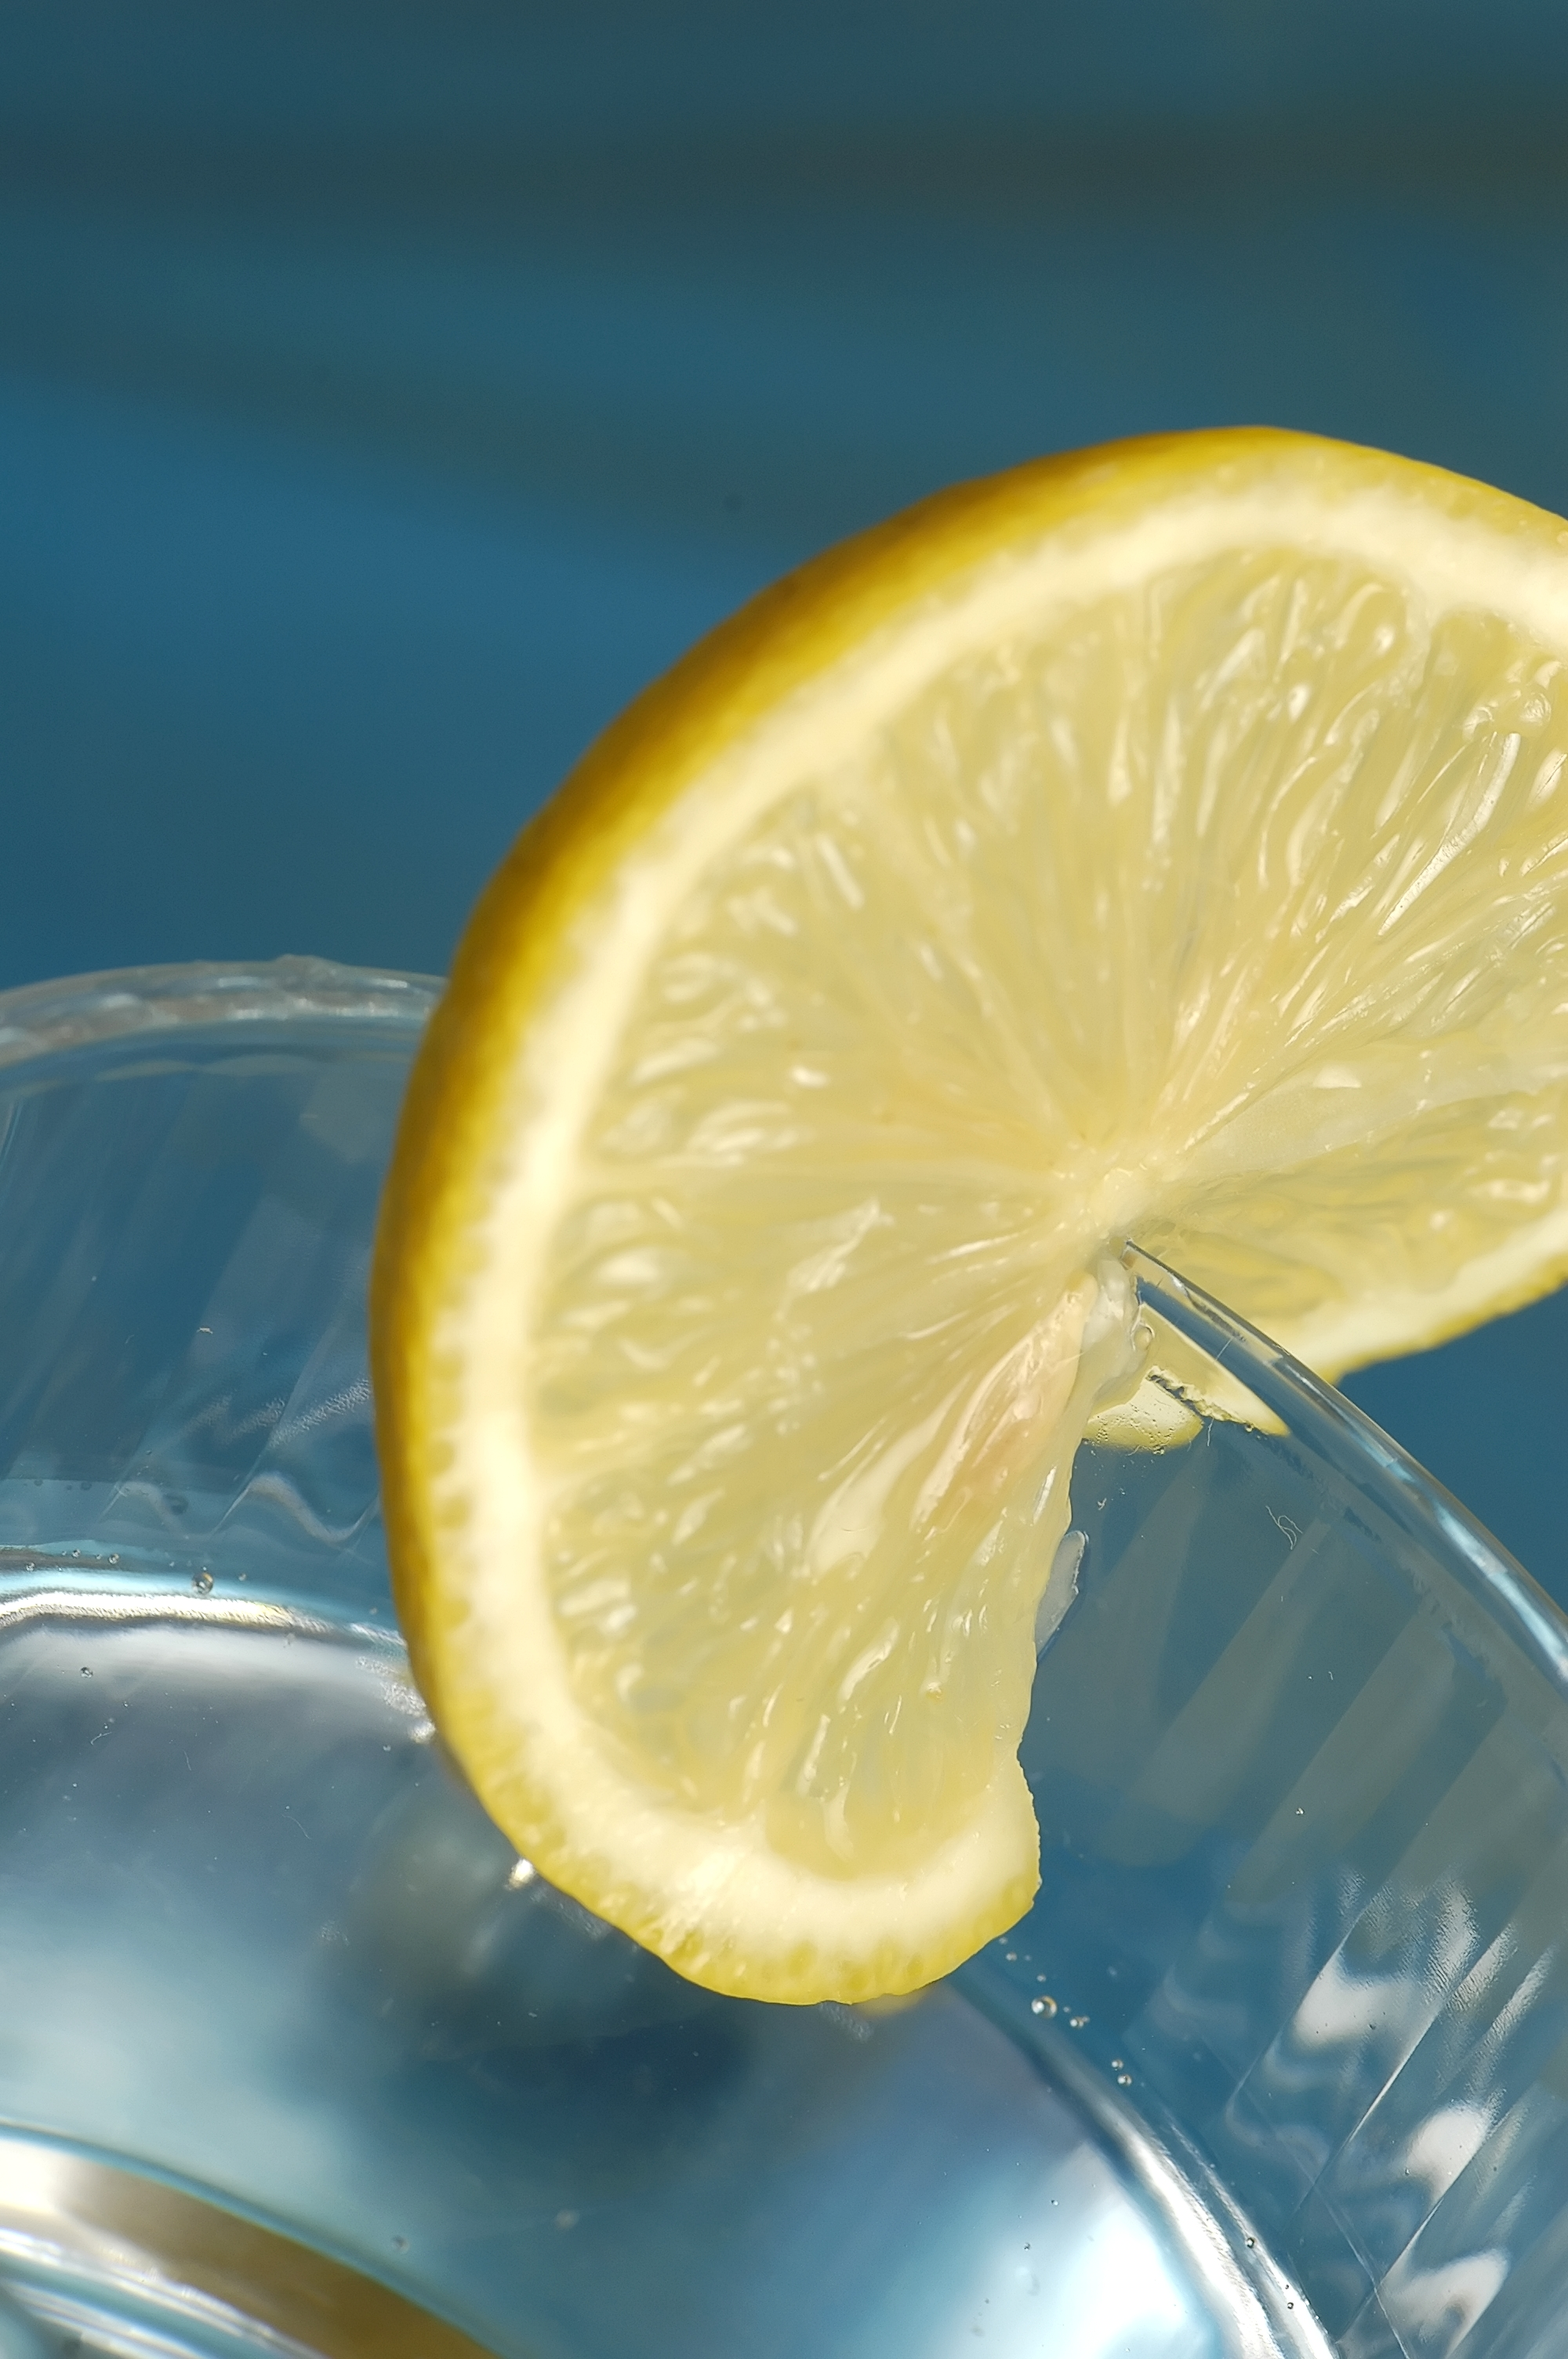 Make your own electrolyte drink